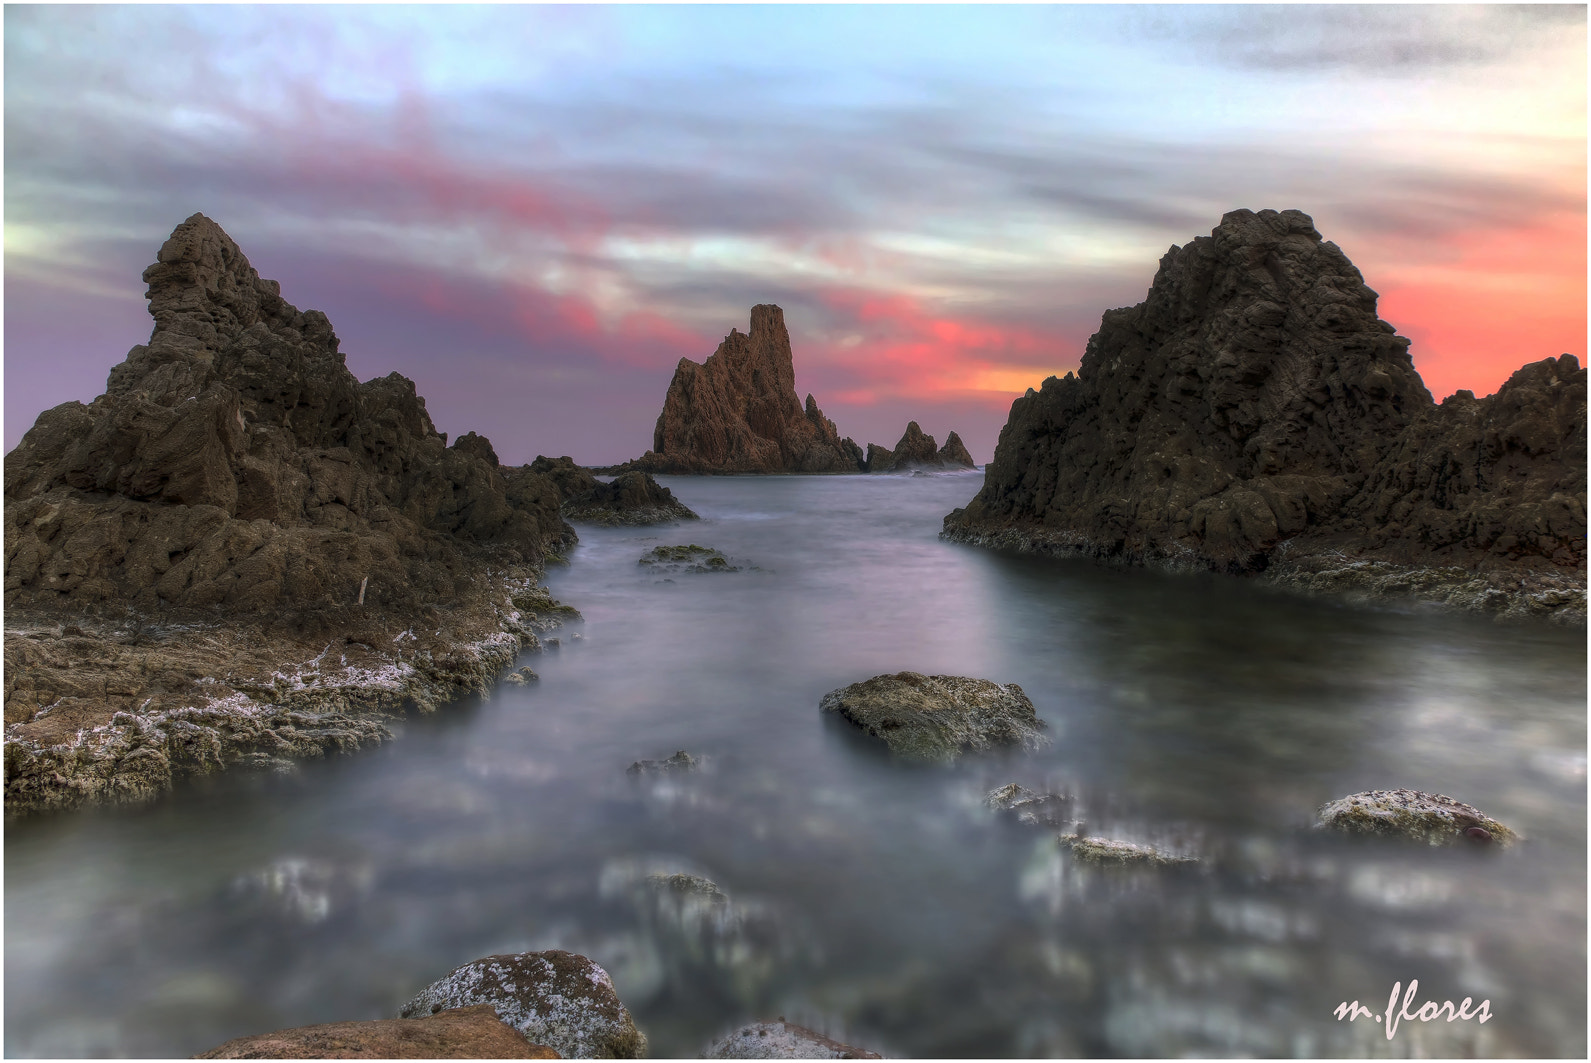 Photograph Arrecife de las sirenas by manolo flores on 500px